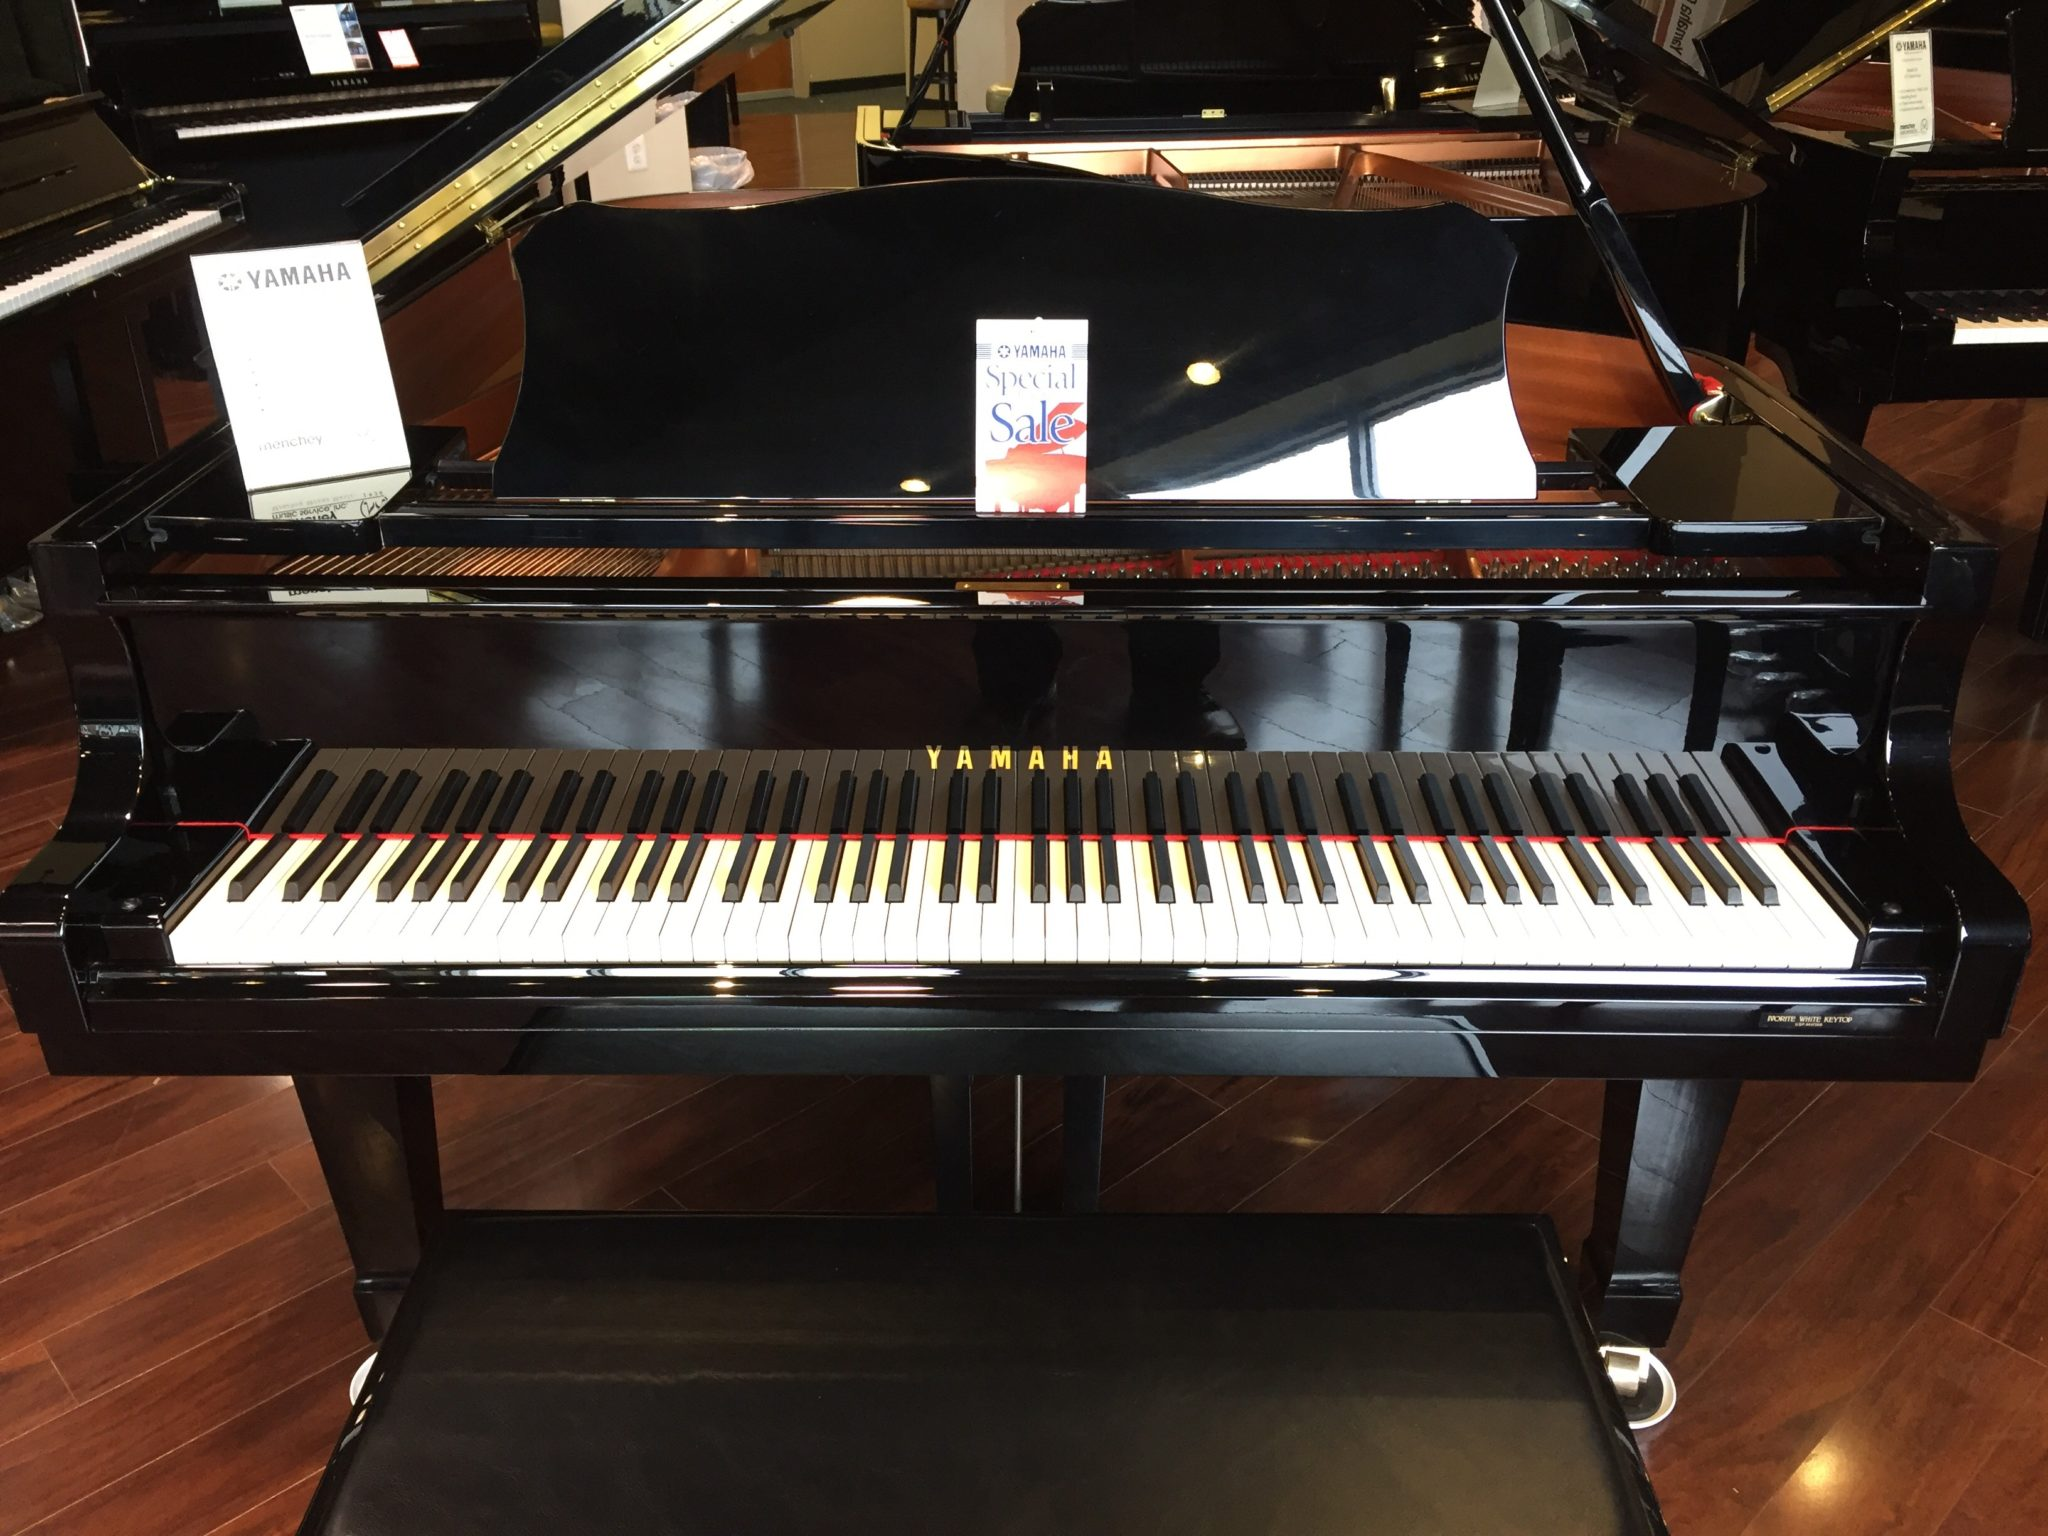 Yamaha model c3 6 39 1 grand piano menchey music for Price of a yamaha baby grand piano